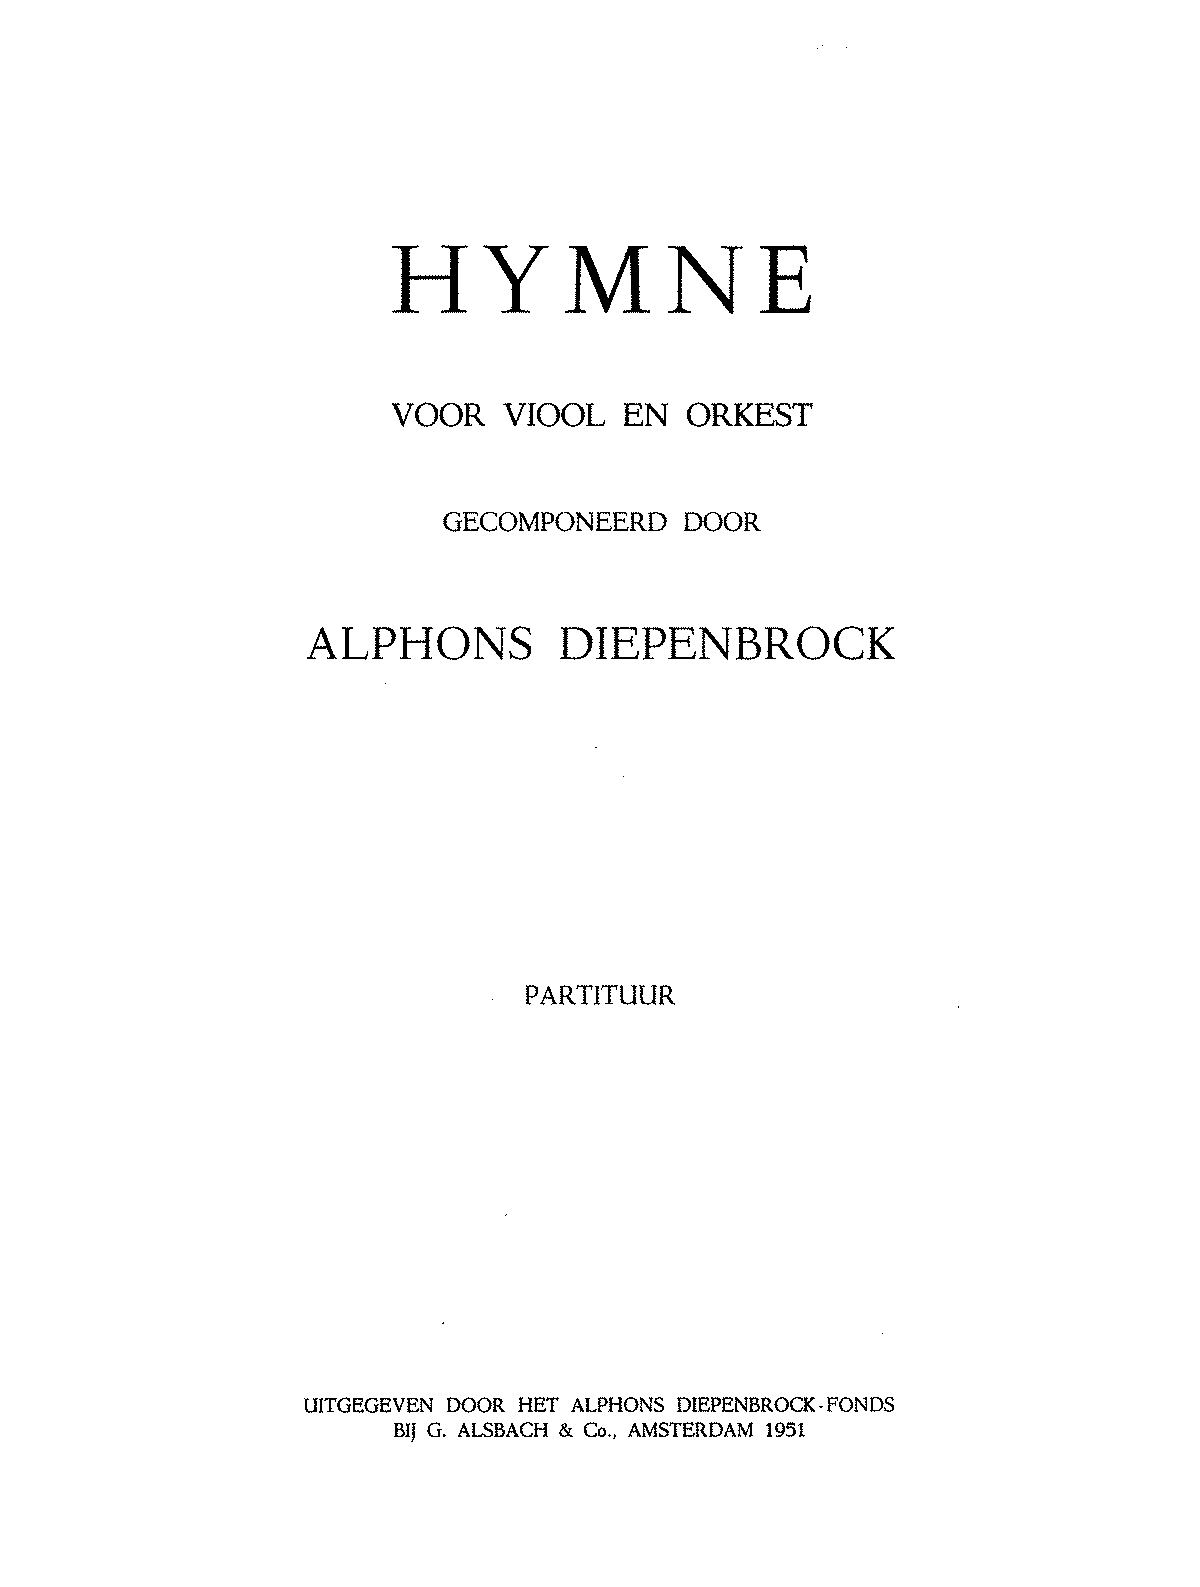 PMLP367247-Diepenbrock - Hymne for Violin and Orchestra.pdf